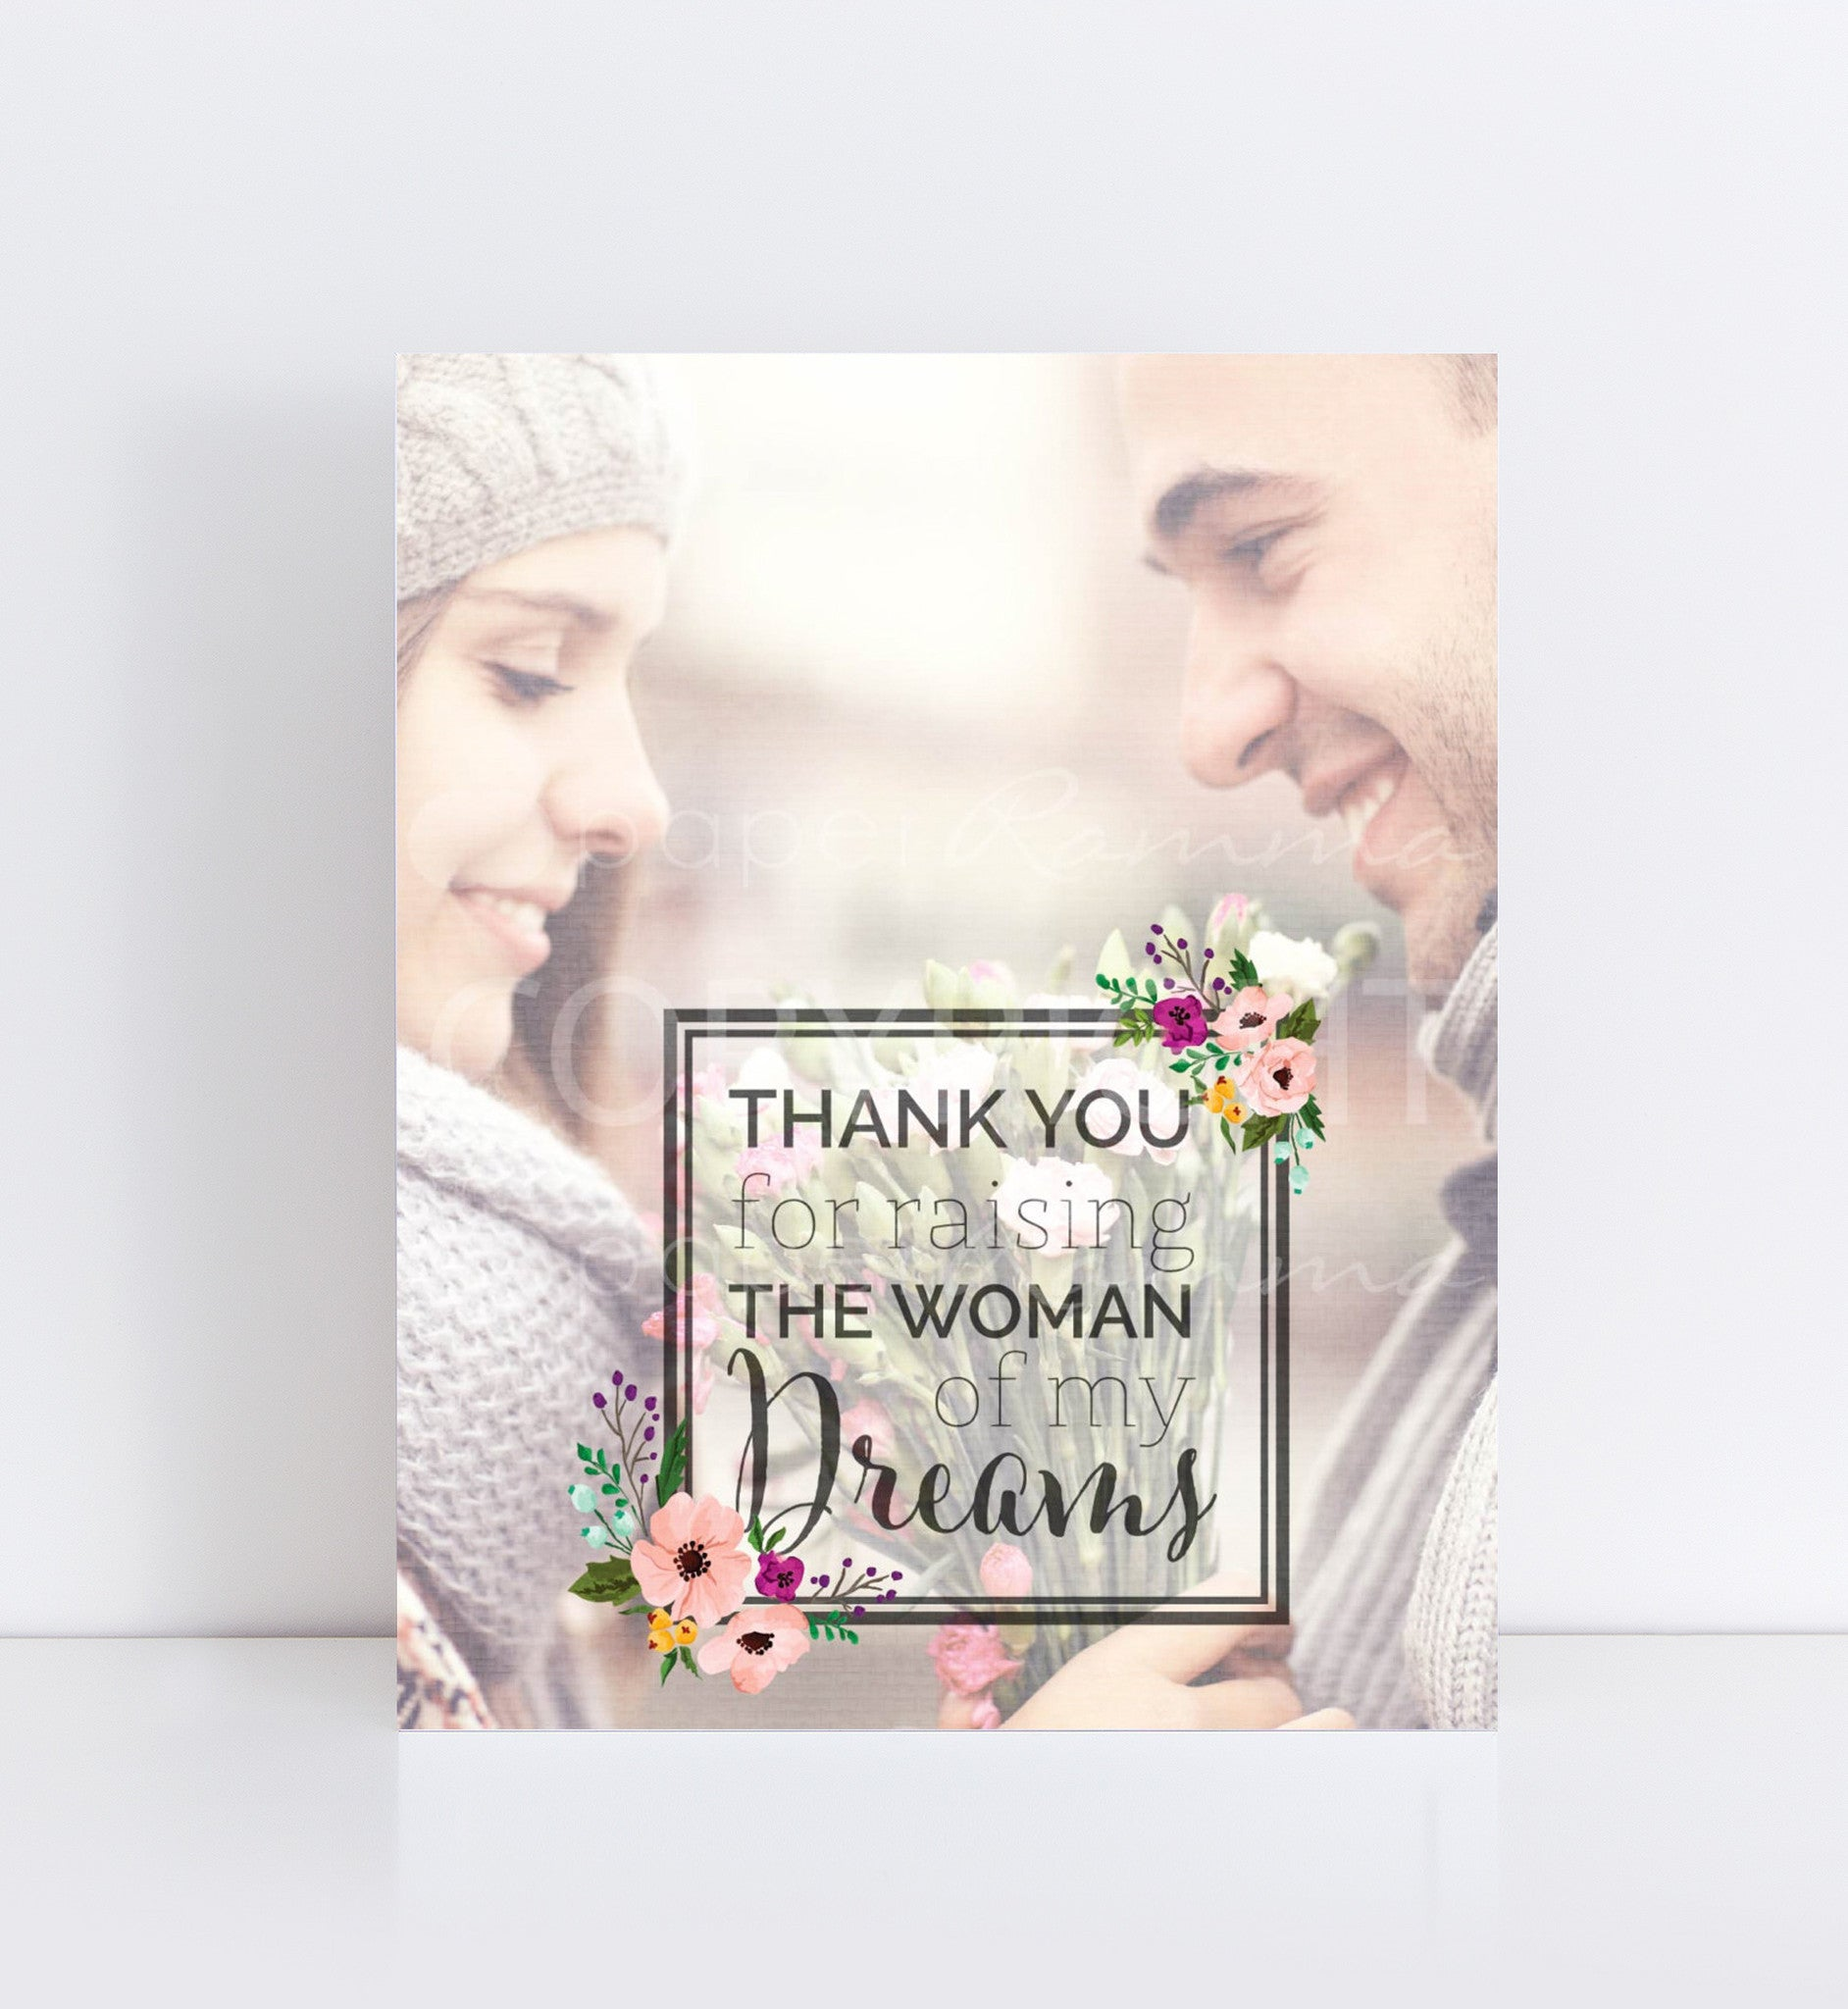 Gift From Groom, Photo Quote, Personalized Photo Gifts